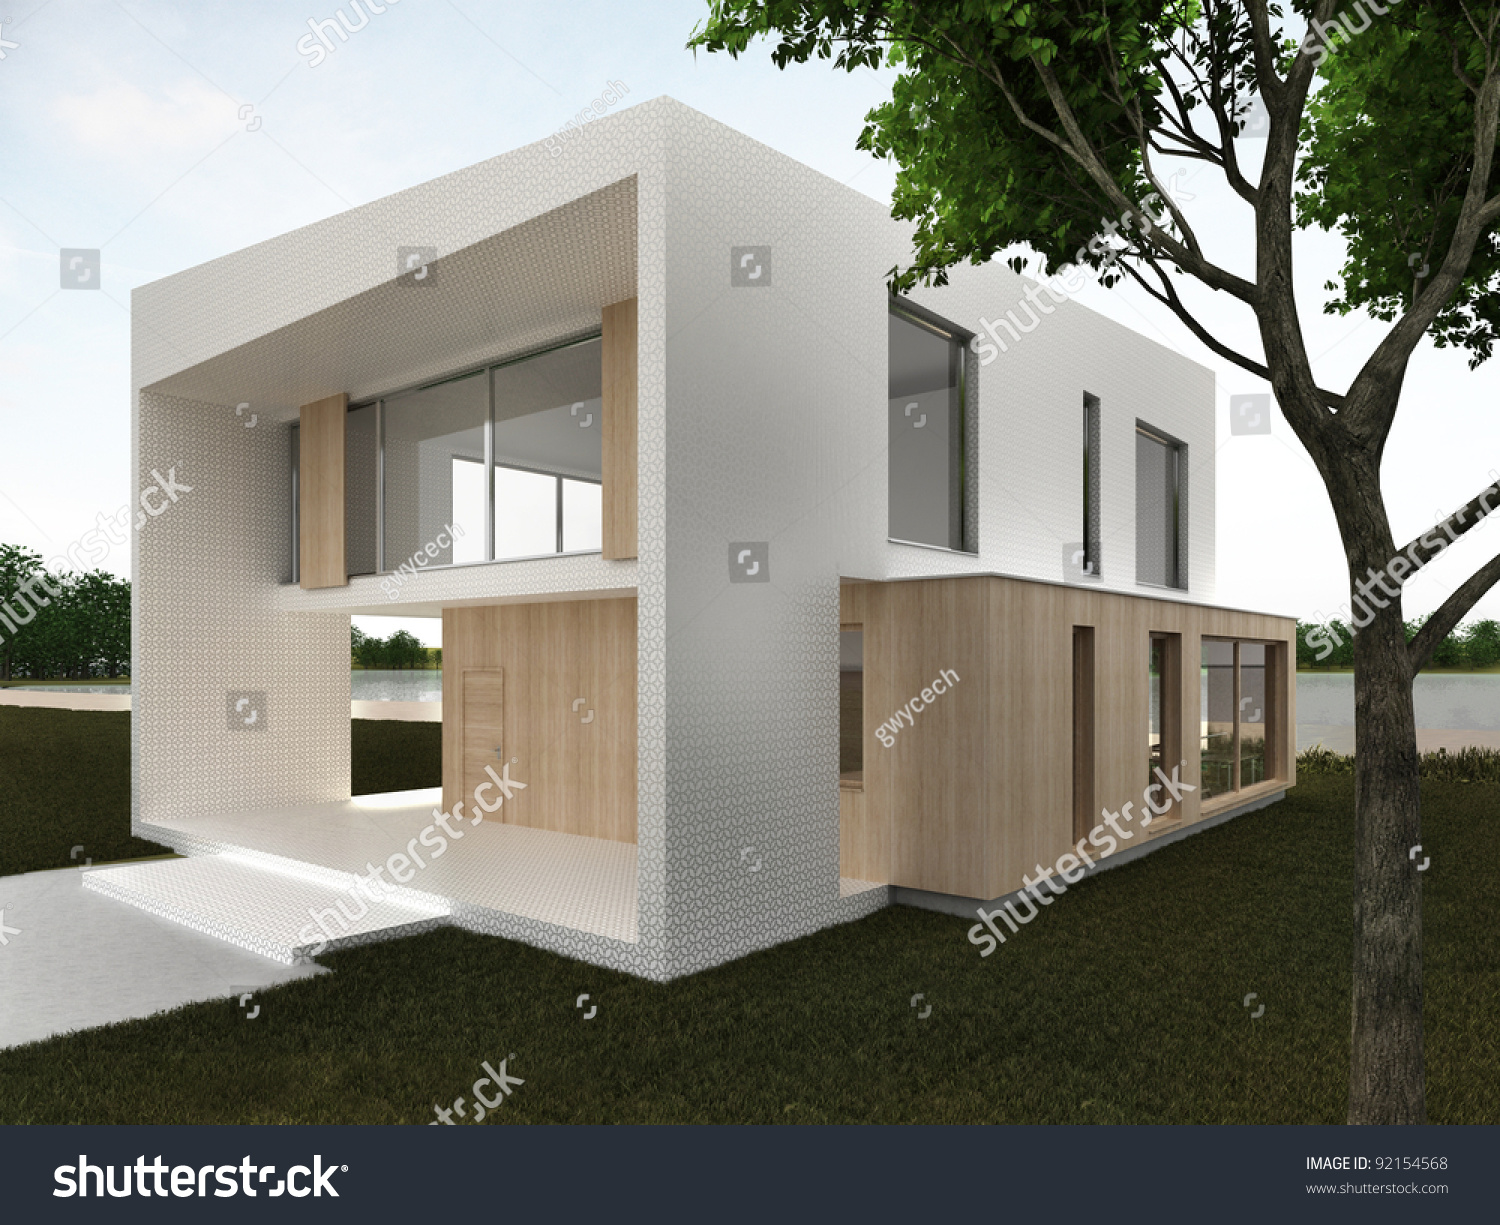 Modern house design front yard computer generated visualization mosaic and wood facade